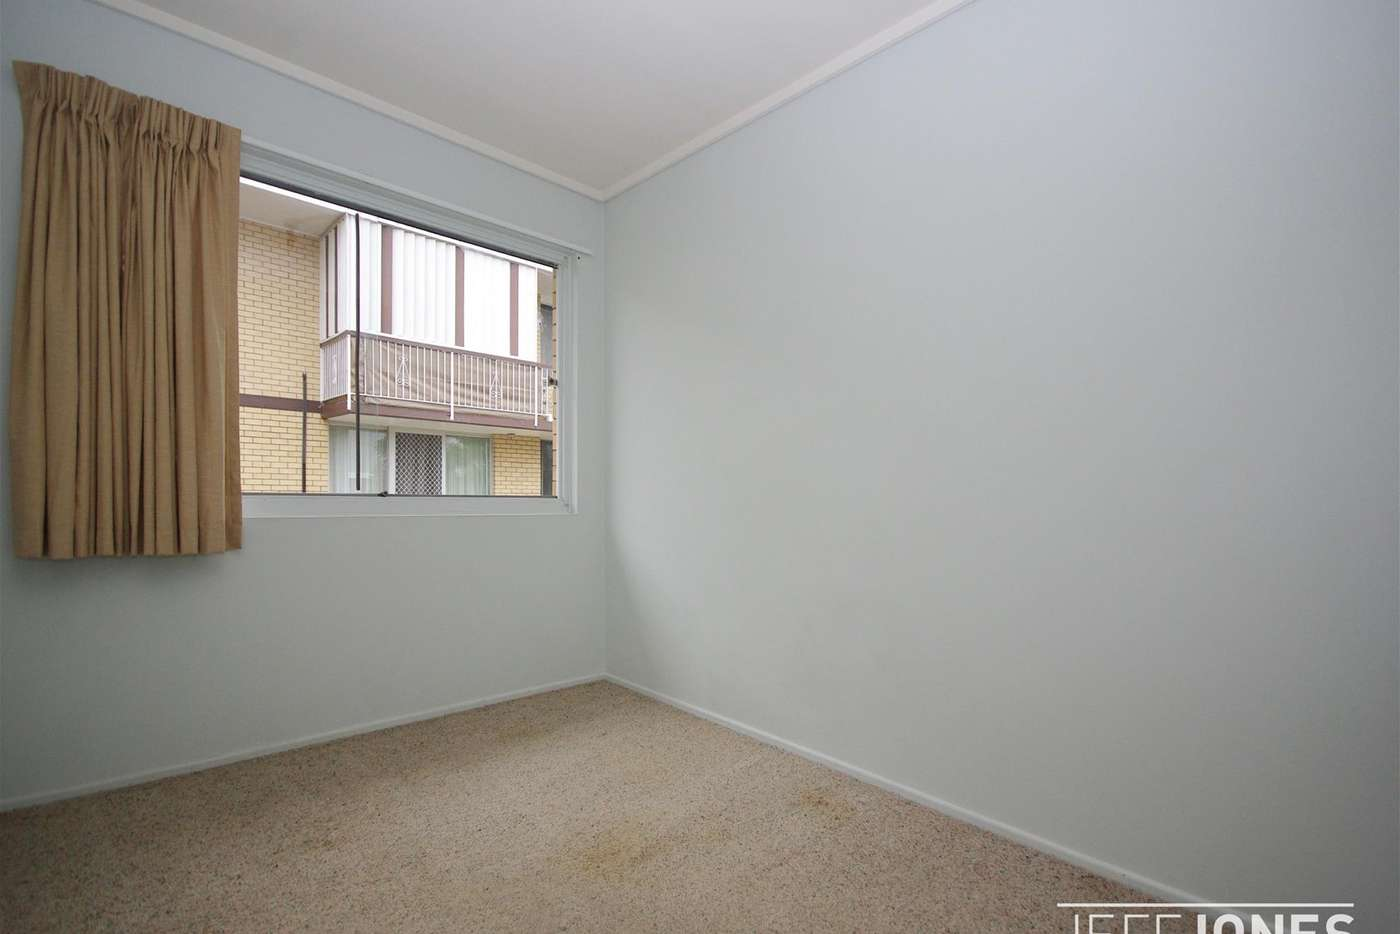 Sixth view of Homely unit listing, 7/49 Rialto Street, Coorparoo QLD 4151